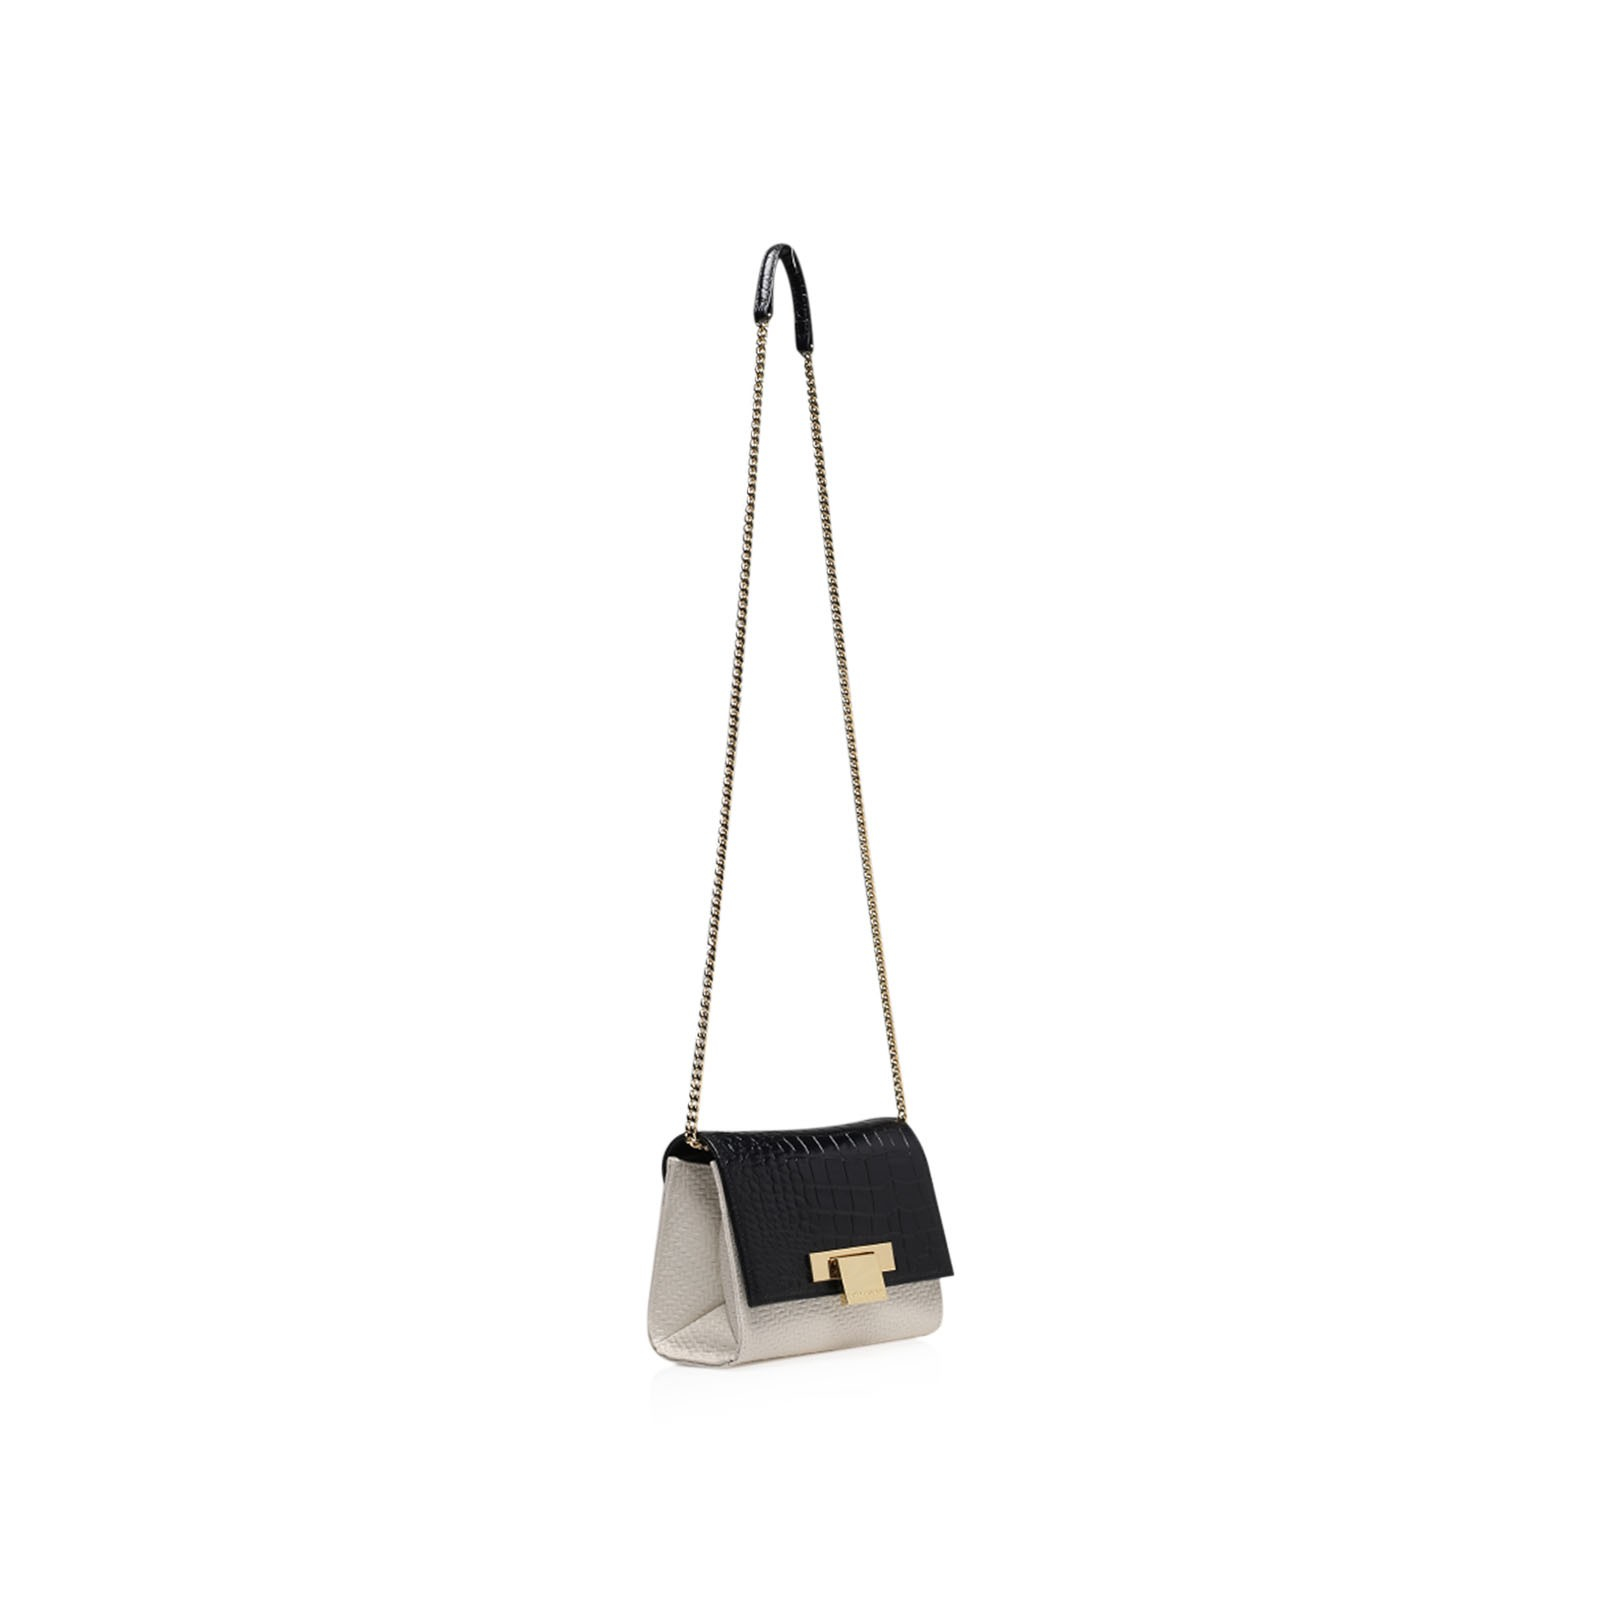 Kurt Geiger Leather Woven Annie Cross Body Bag in Black